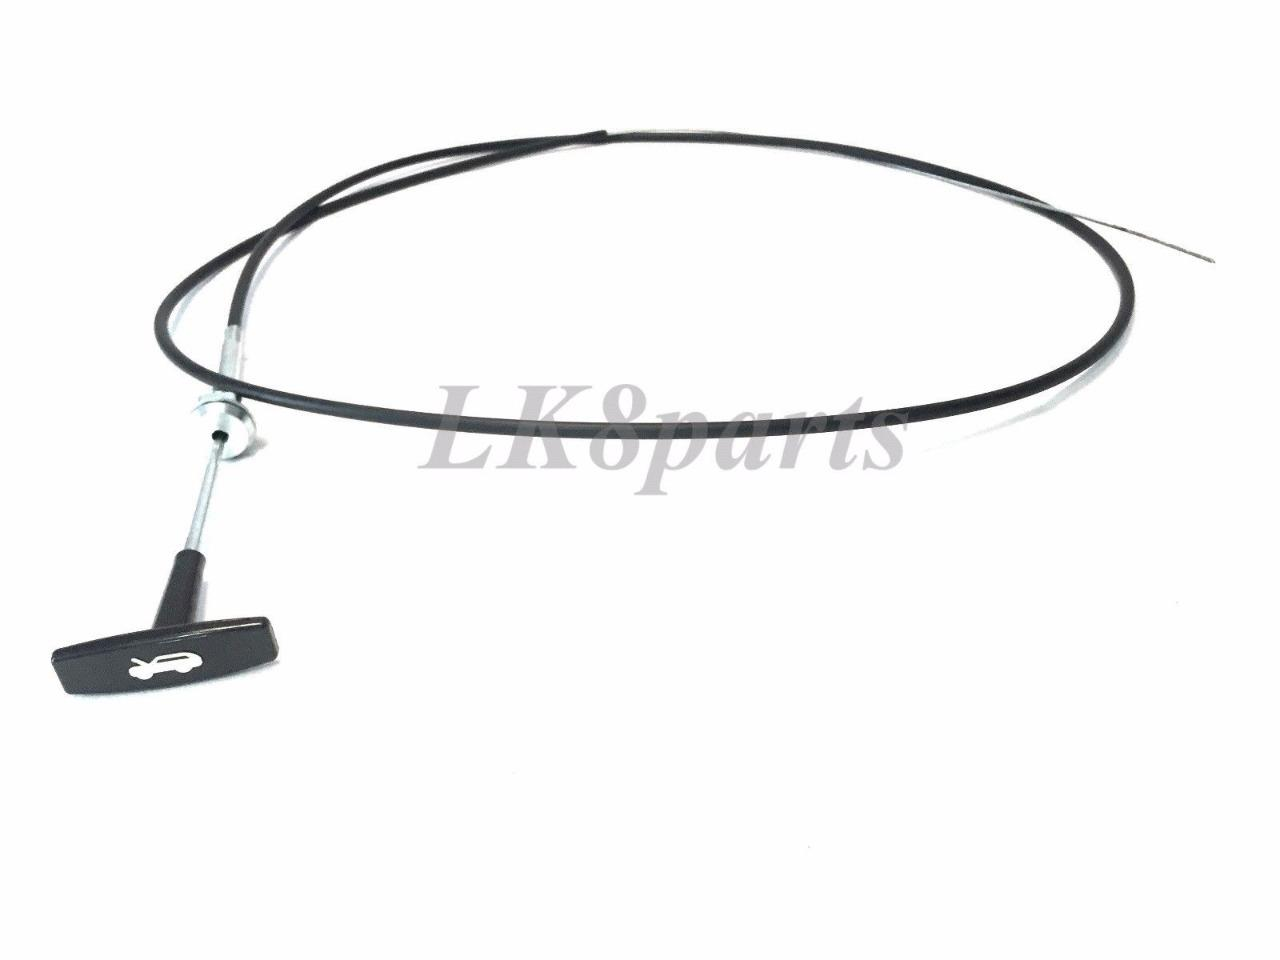 LAND ROVER DISCOVERY 1 RANGE ROVER CLASSIC RELEASE CABLE